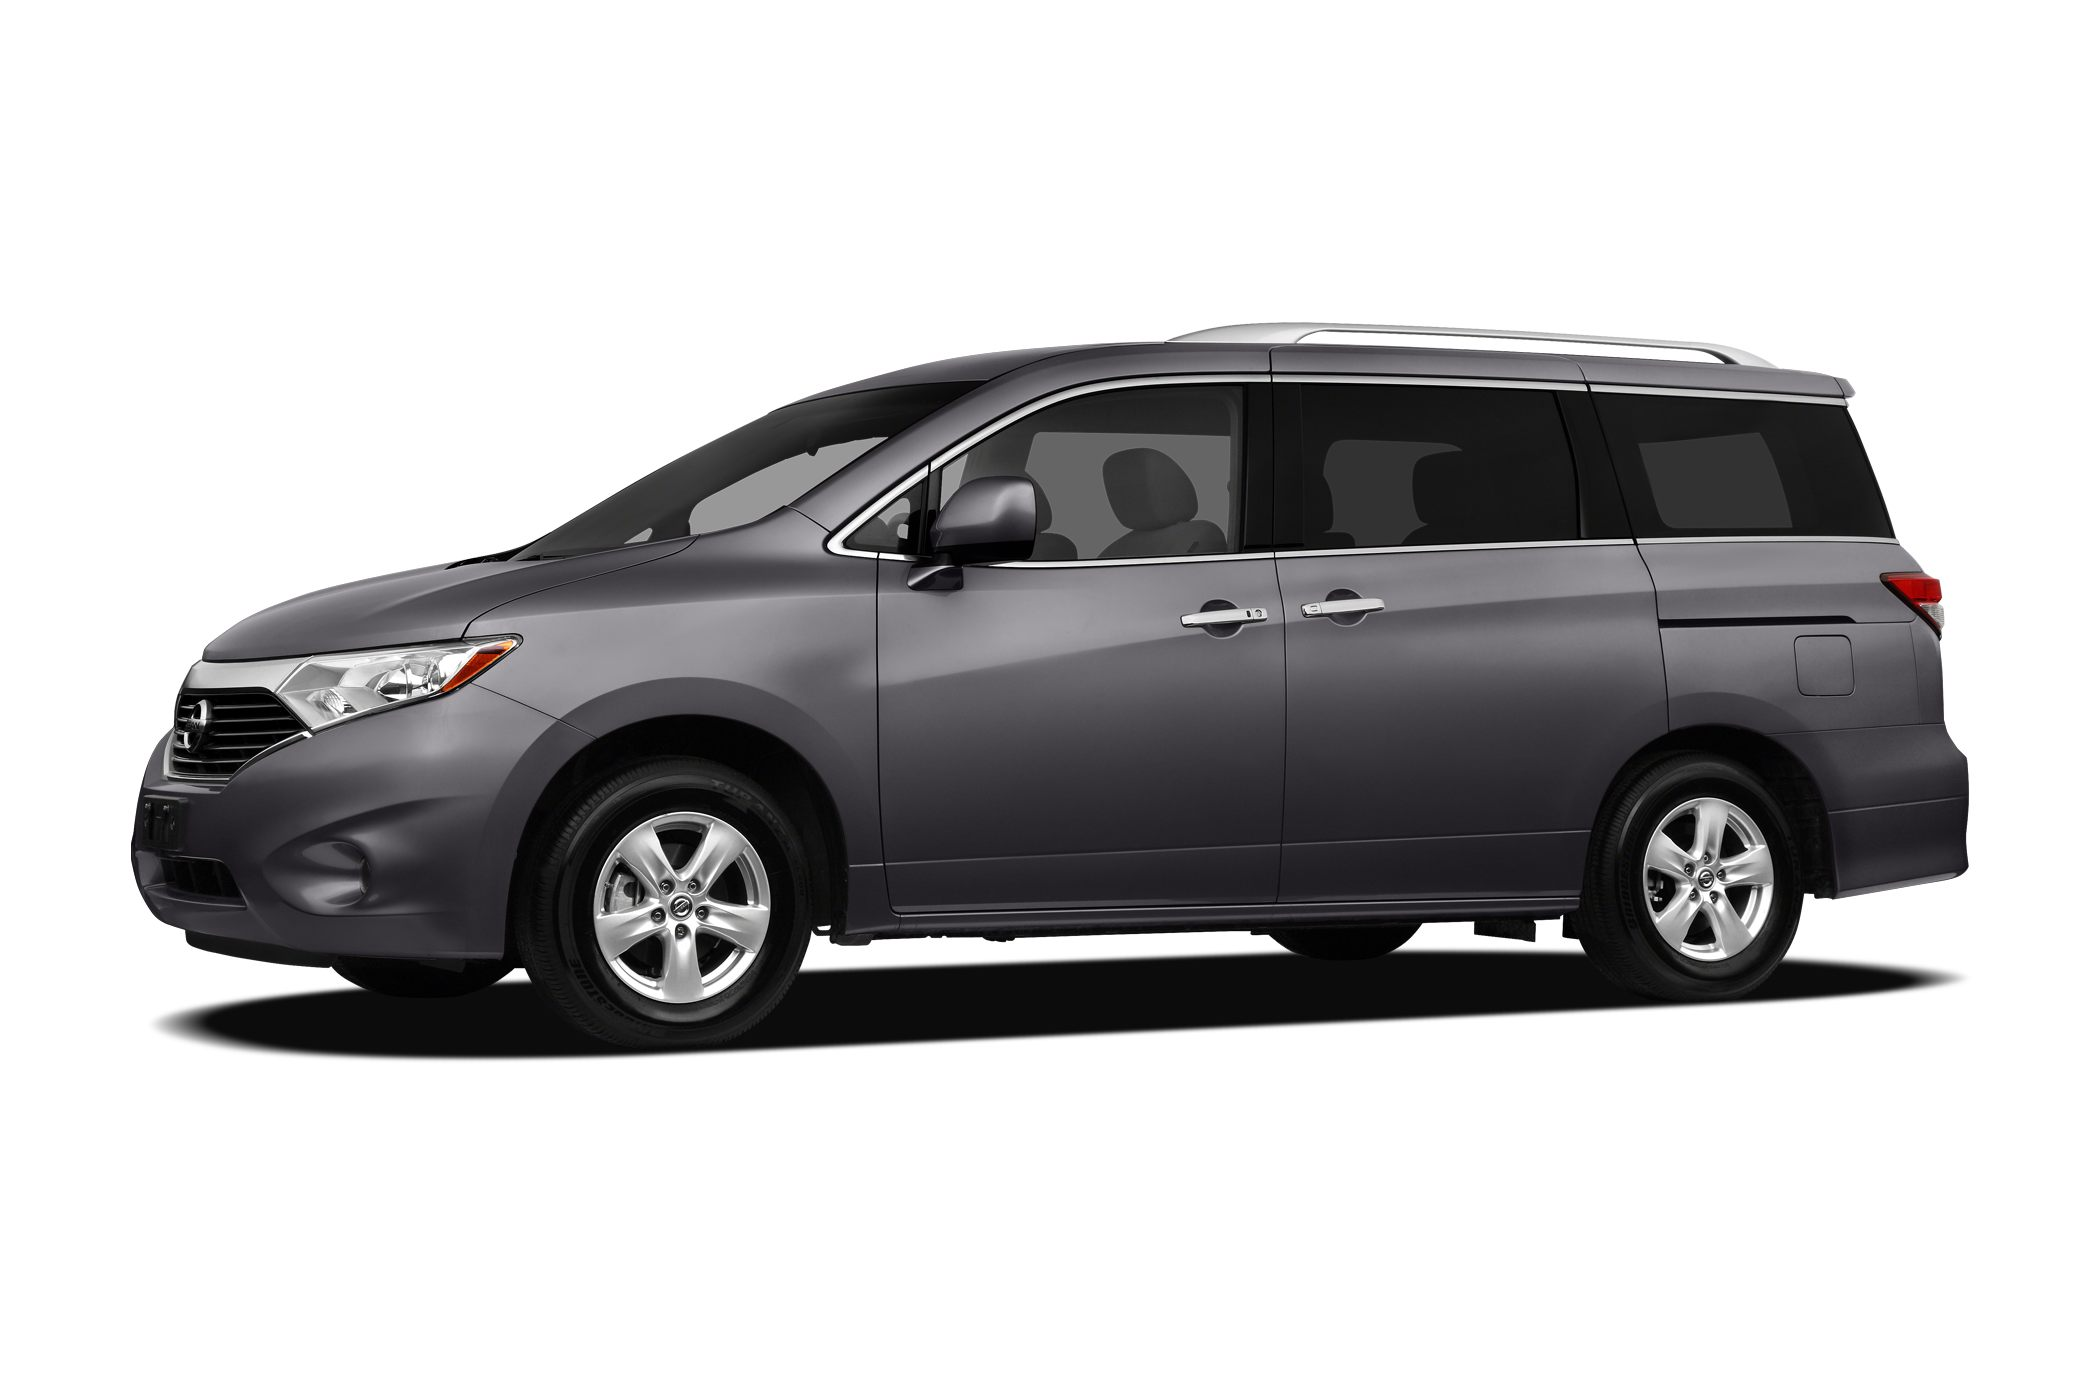 2011 Nissan Quest SV Vehicle Options ABS Brakes Front Side Airbag Side Head Curtain Airbag Air con